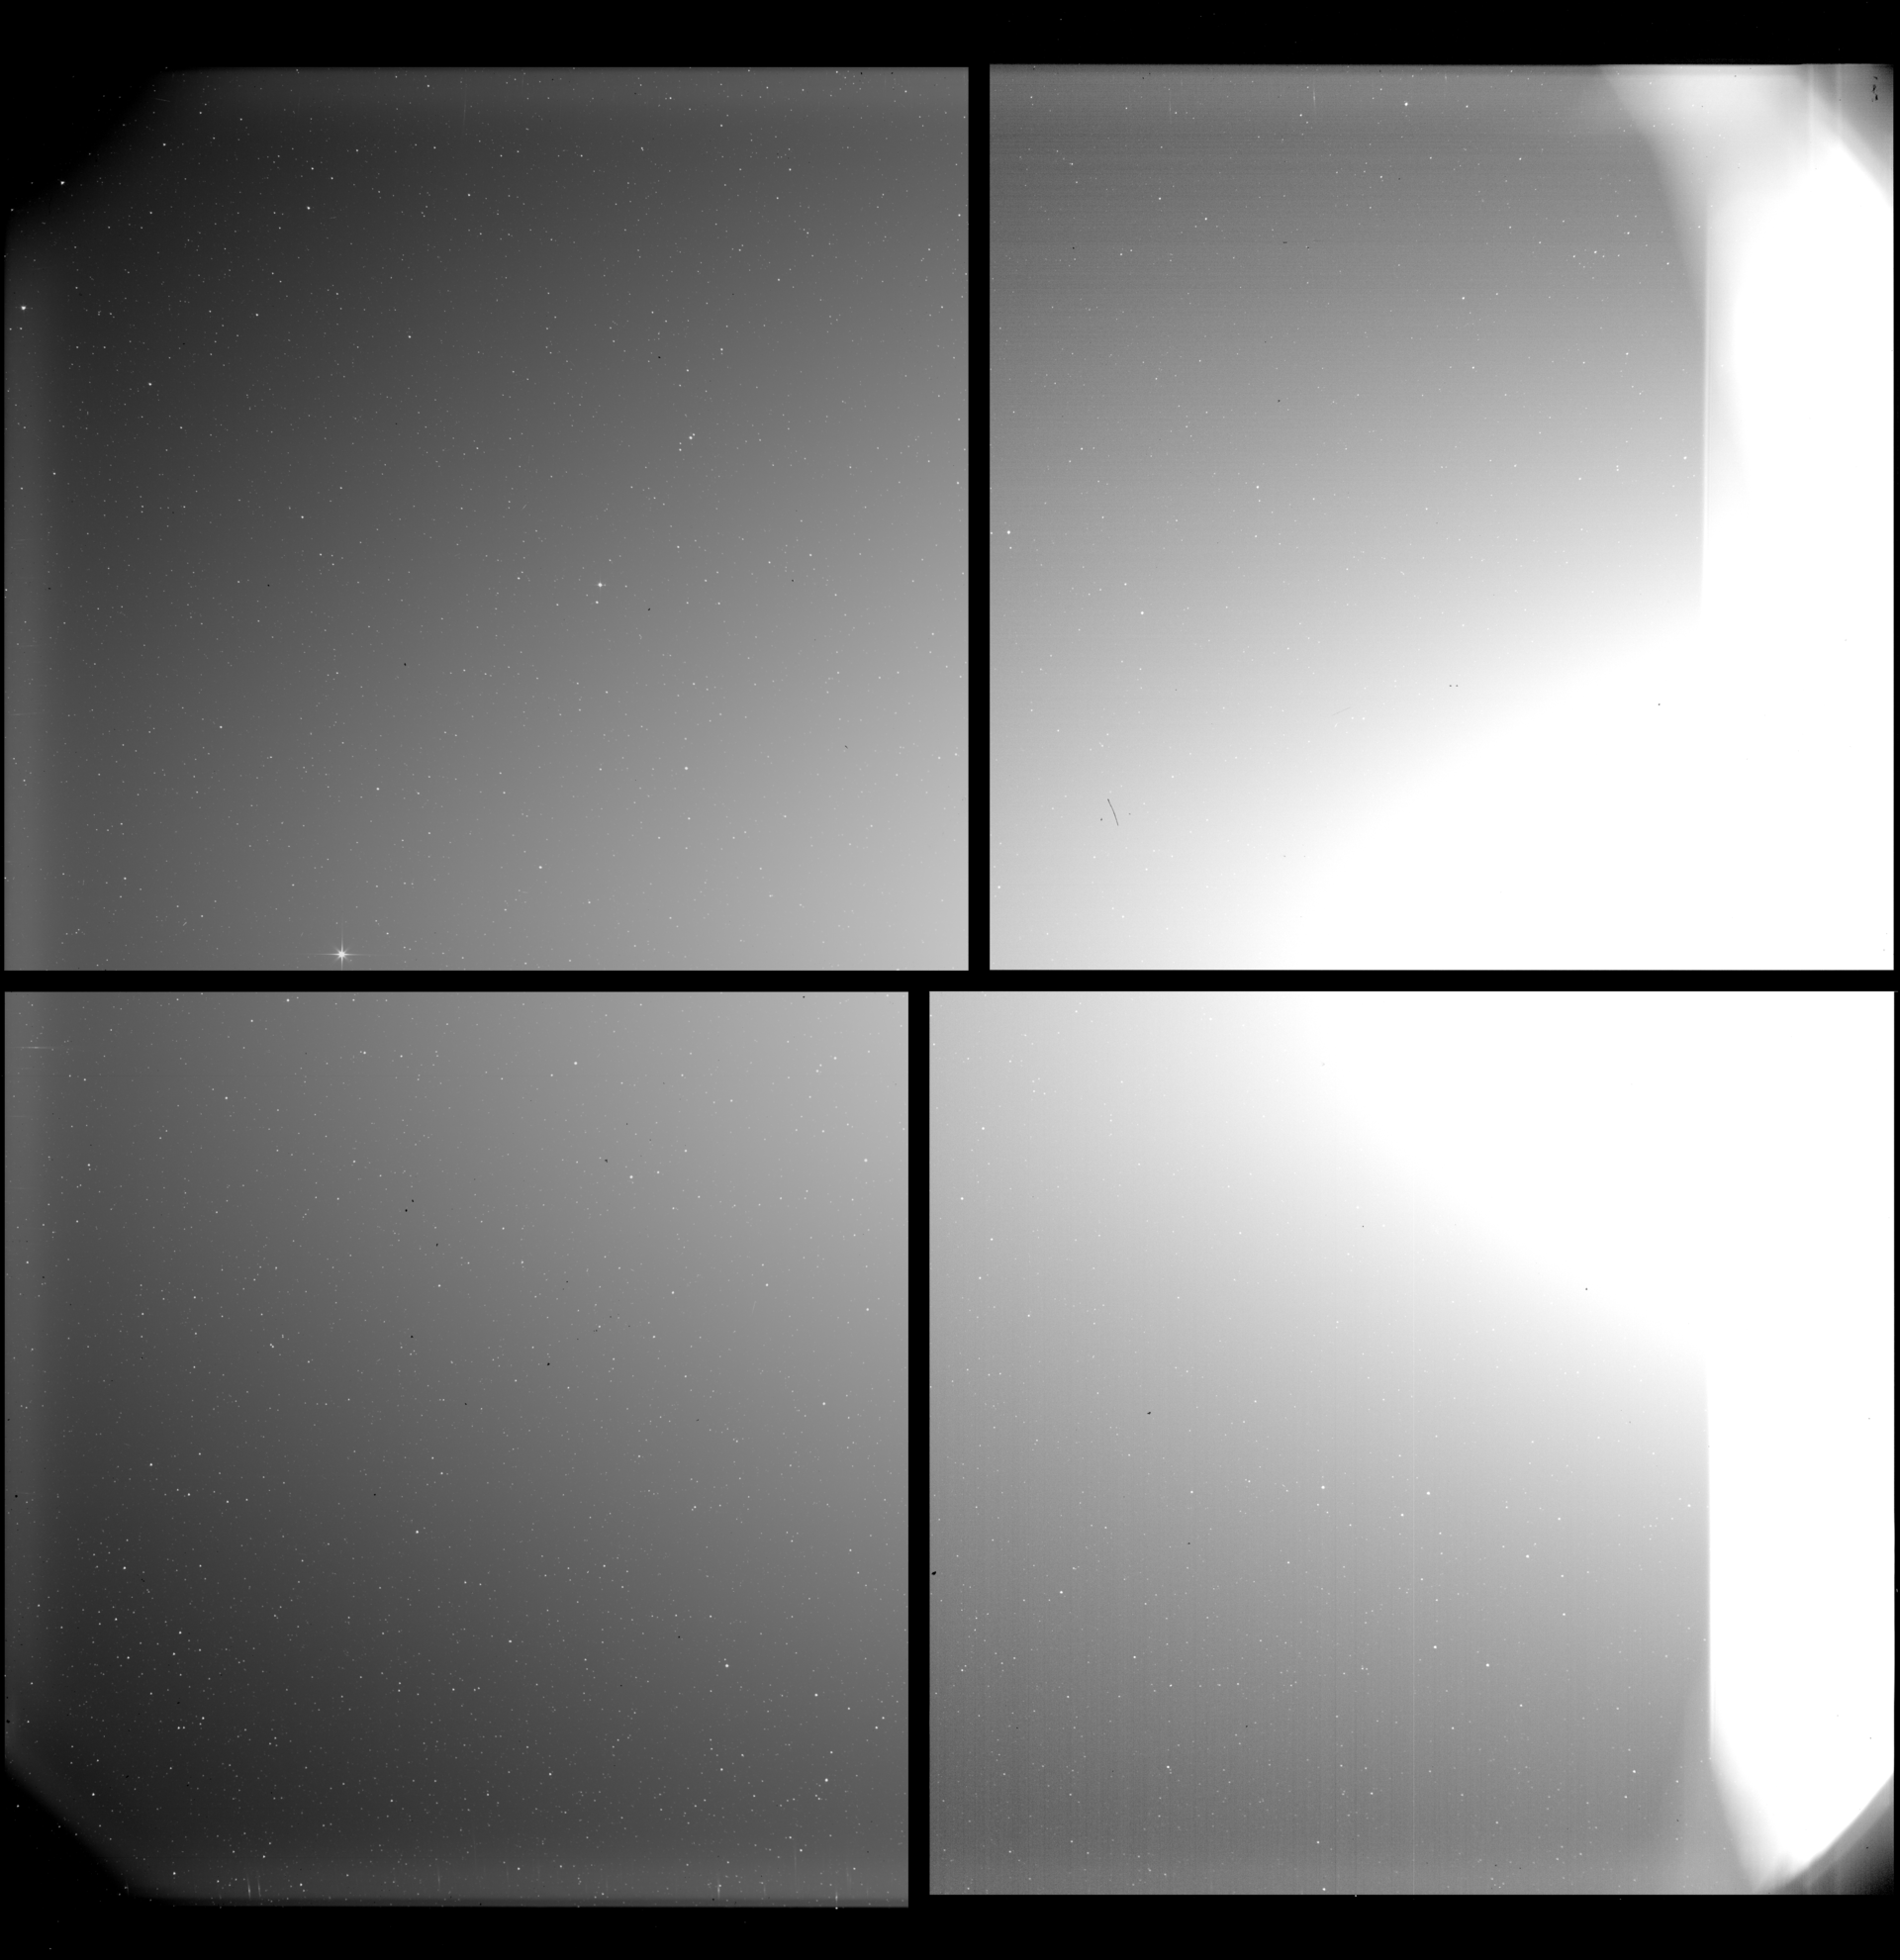 "The Heliospheric Imager (SoloHI) telescope on ESA's Solar Orbiter spacecraft takes images of the solar wind – the stream of charged particles constantly released by the Sun into outer space – by capturing the light scattered by electrons in the wind. This image is a mosaic of four separate images from four separate detectors, obtained during the instrument's 'first light' on 5 June 2020. Then, Solar Orbiter was at a distance of 0.5 astronomical units (AU; one AU is equivalent to the average distance from Earth to the Sun, about 150 million kilometres) from the Sun. SoloHI is looking off to the left side of the Sun, 5 to 45 degrees from Sun center, which at 0.5 AU corresponds to about 10 to 85 times the solar radius, or 0.04 AU to 0.39 AU. The Sun is located to the right of the frame, and its light is blocked by a series of baffles that reject the sunlight by a factor of a trillion (1012). The last baffle is in the field of view on the right-hand side and is illuminated by reflections from the solar array. ""This first light image is amazing and the stray light is what we have modeled,"" says Russell Howard, the SoloHI Principal Investigtor from the US Naval Research Laboratory in Washington, DC. ""I can hardly wait to see the real science images."" (Solar Orbiter/EUI Team (ESA & NASA); CSL, IAS, MPS, PMOD/WRC, ROB, UCL/MSSL)"